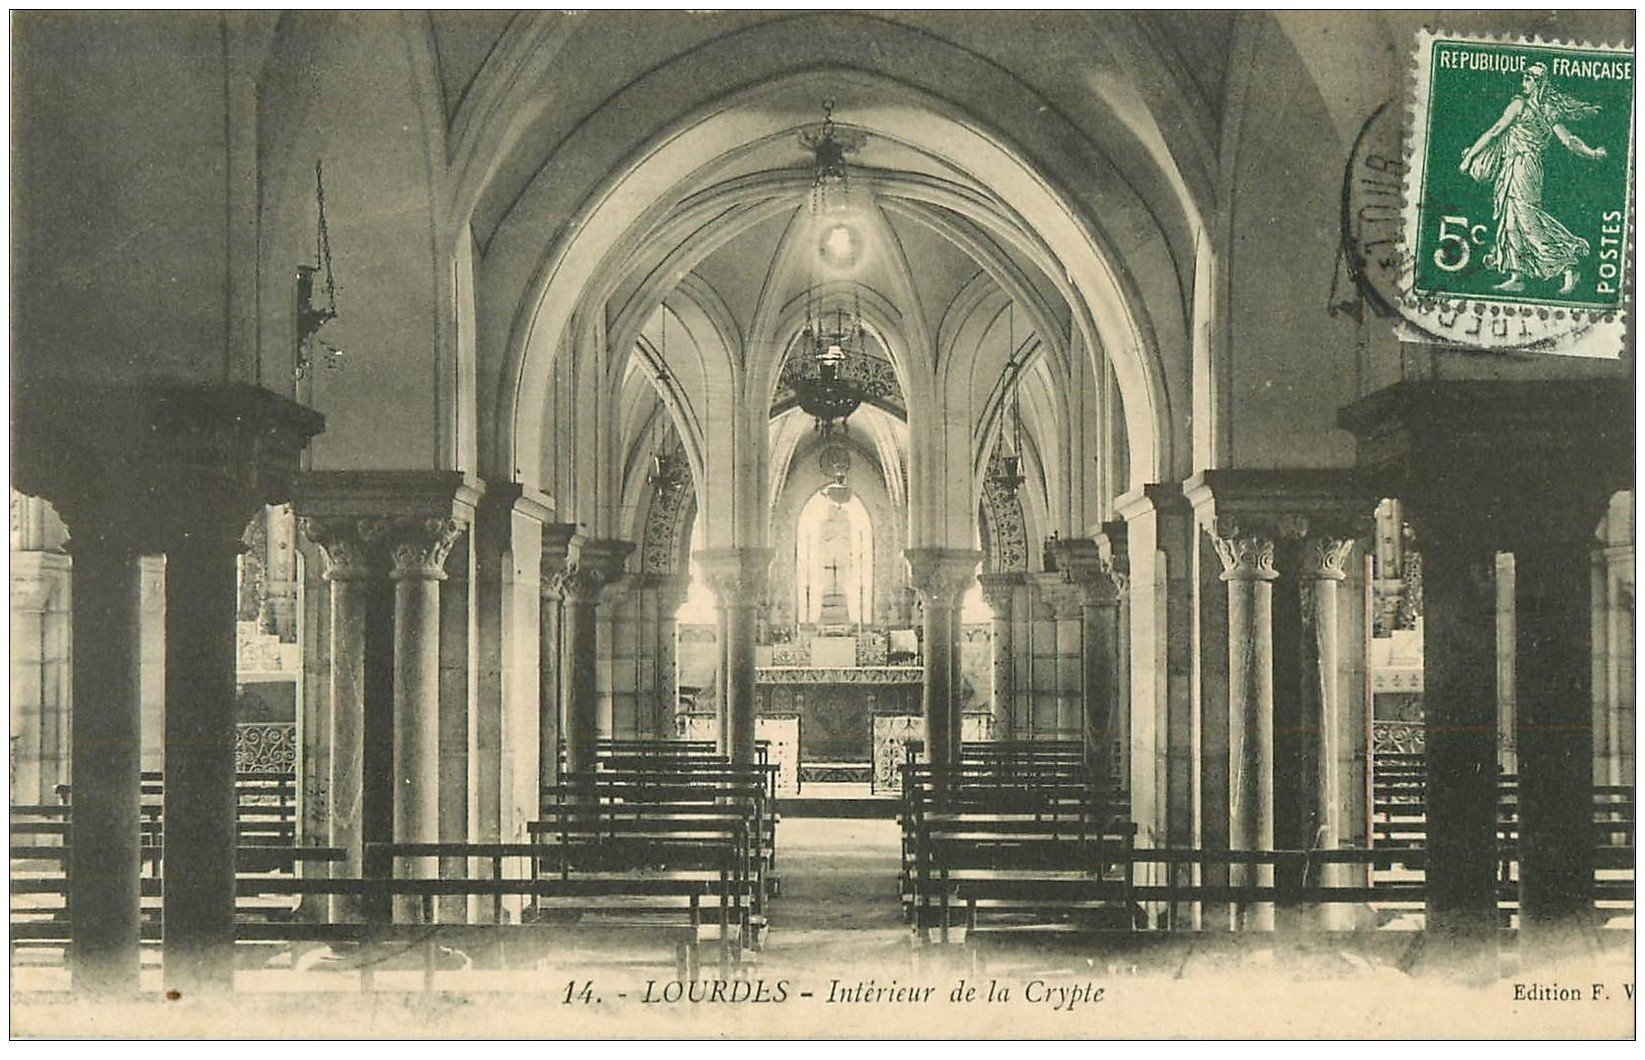 65 lourdes int rieur de la crypte 1910 for Interieur 65